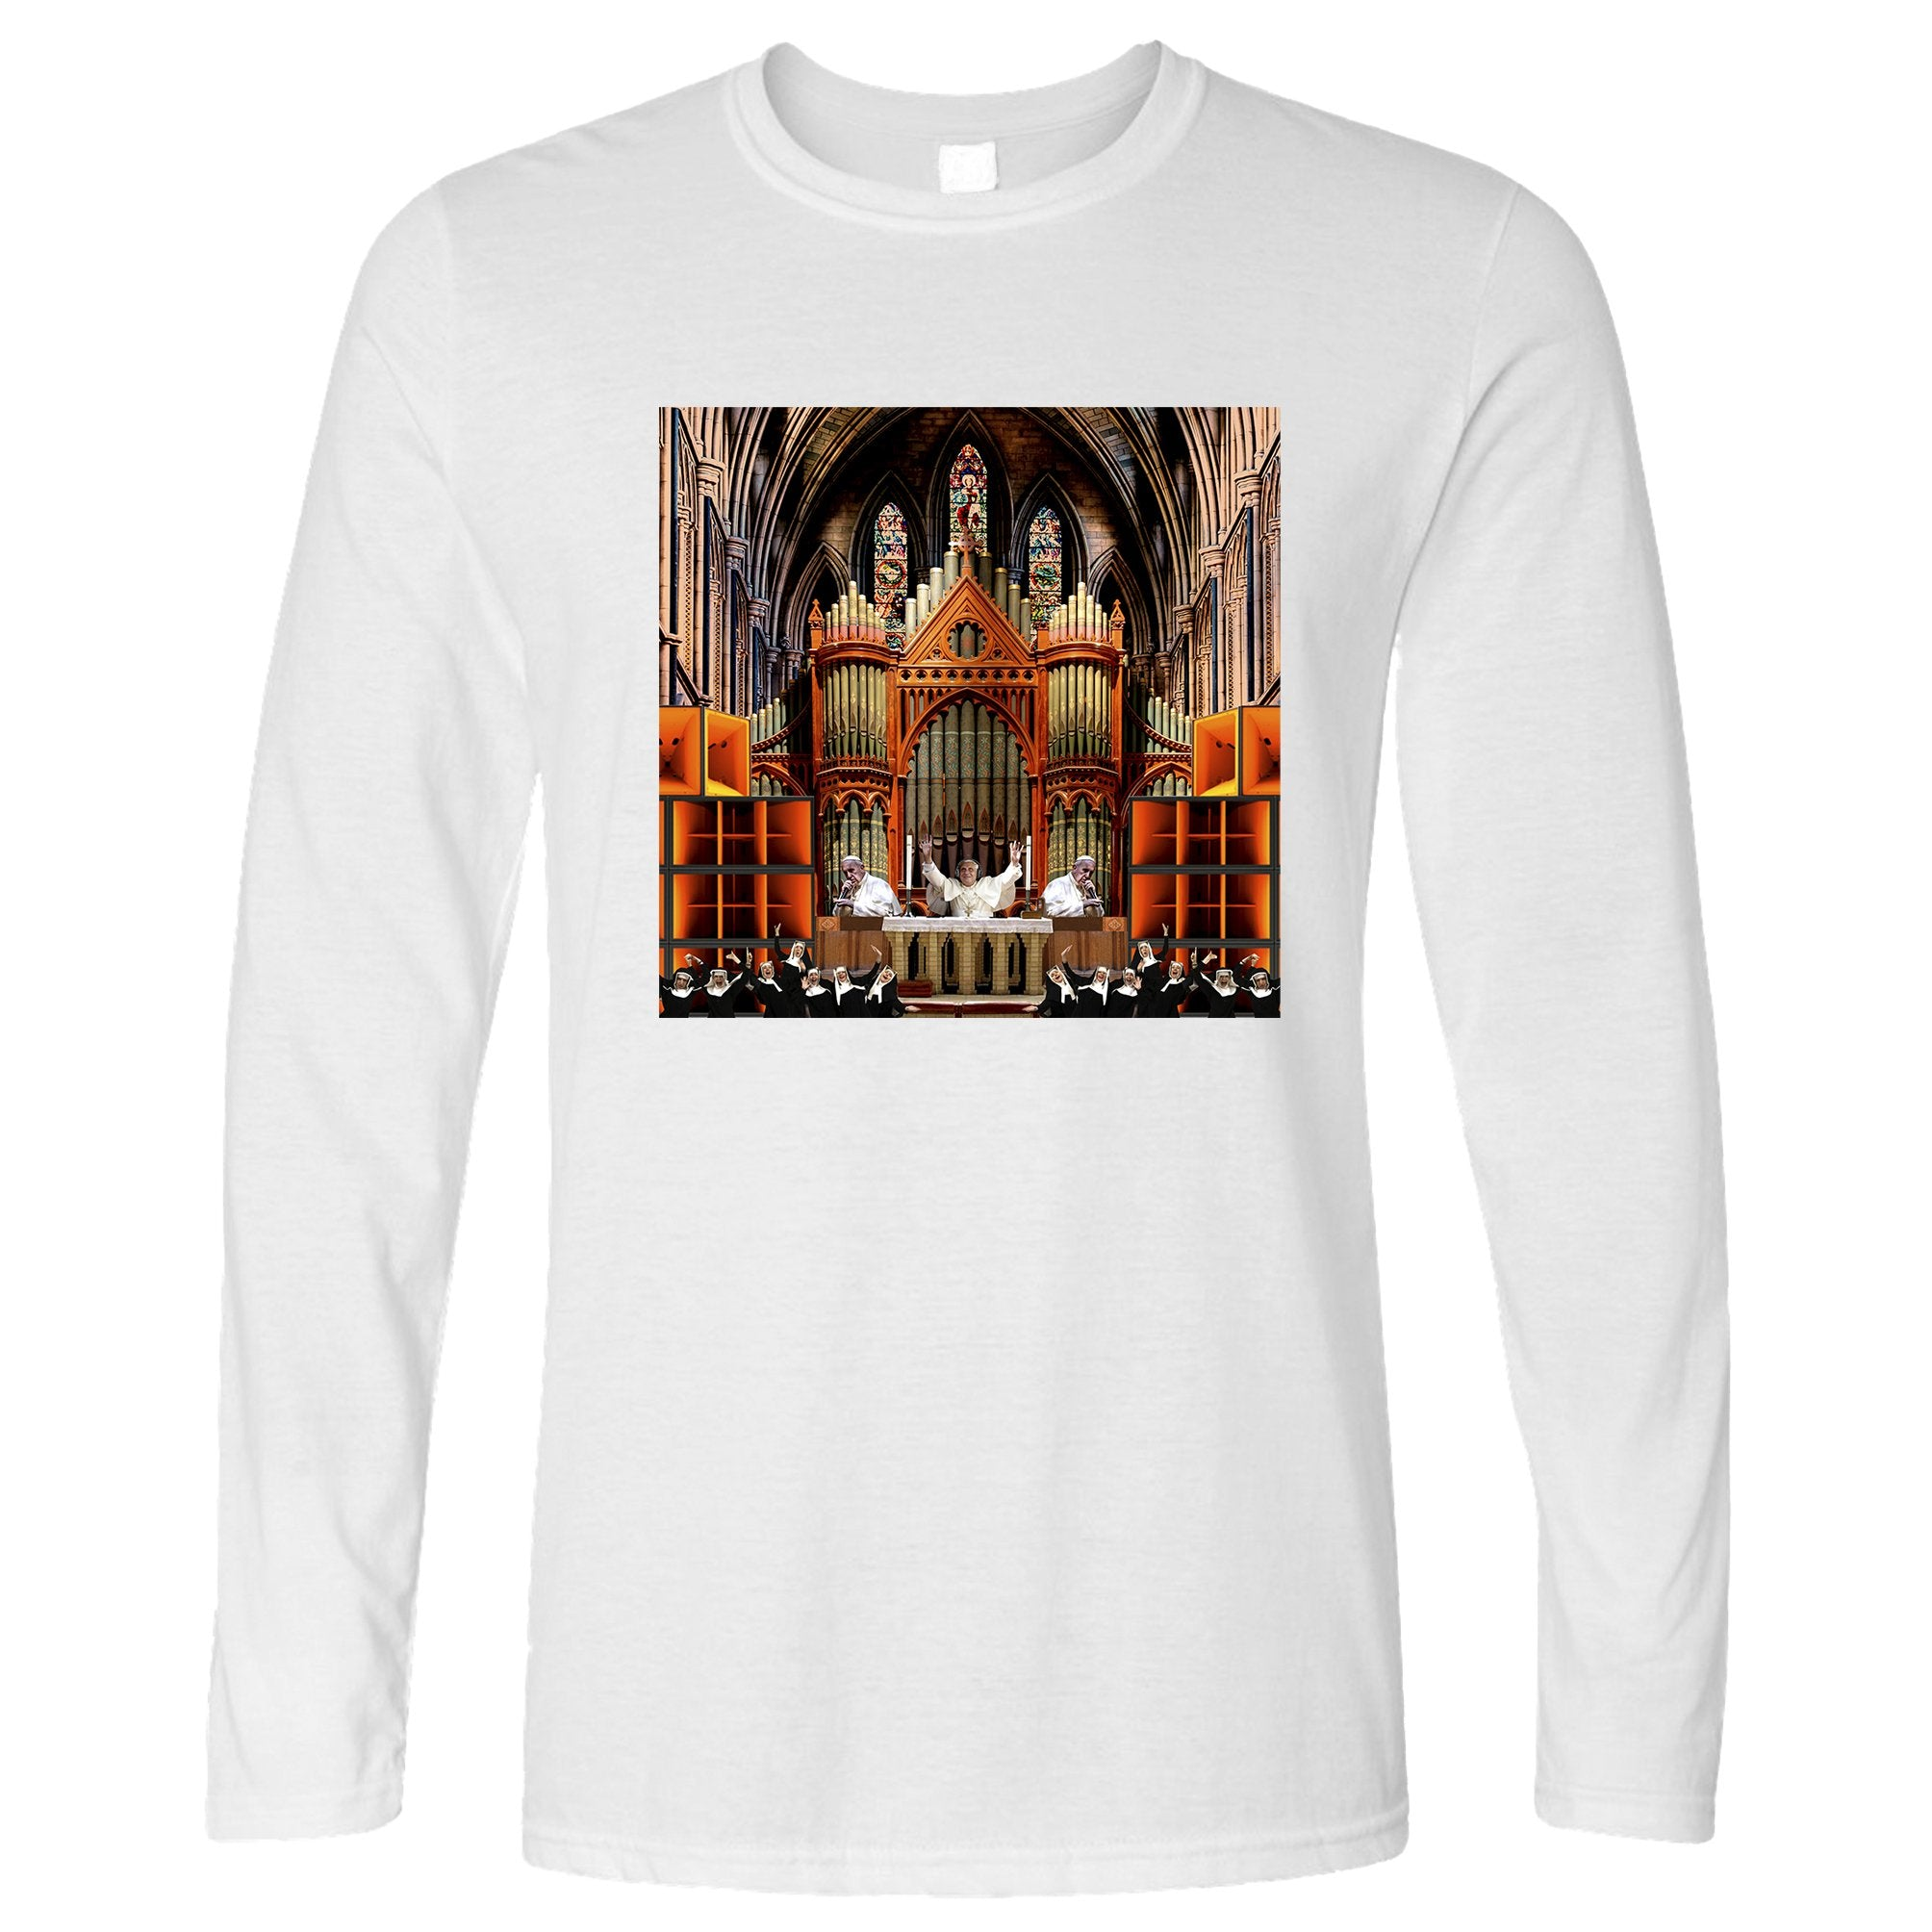 Rave Long Sleeve Nun And Bass Party Collage T-Shirt